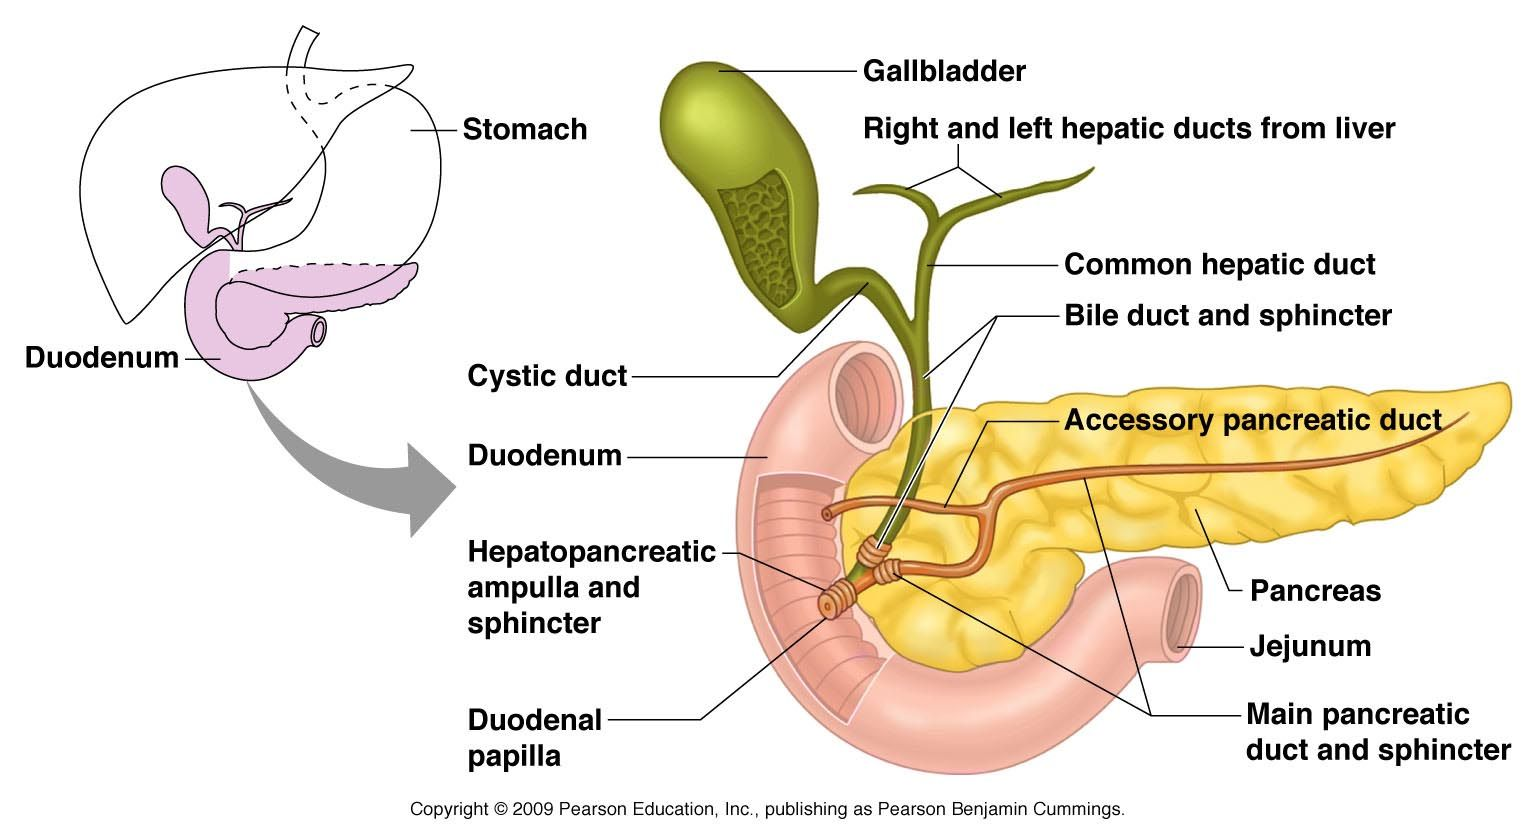 Accessory organs of the digestive tract: Pancreas, Gallbladder, Liver, Duodenum and their ducts